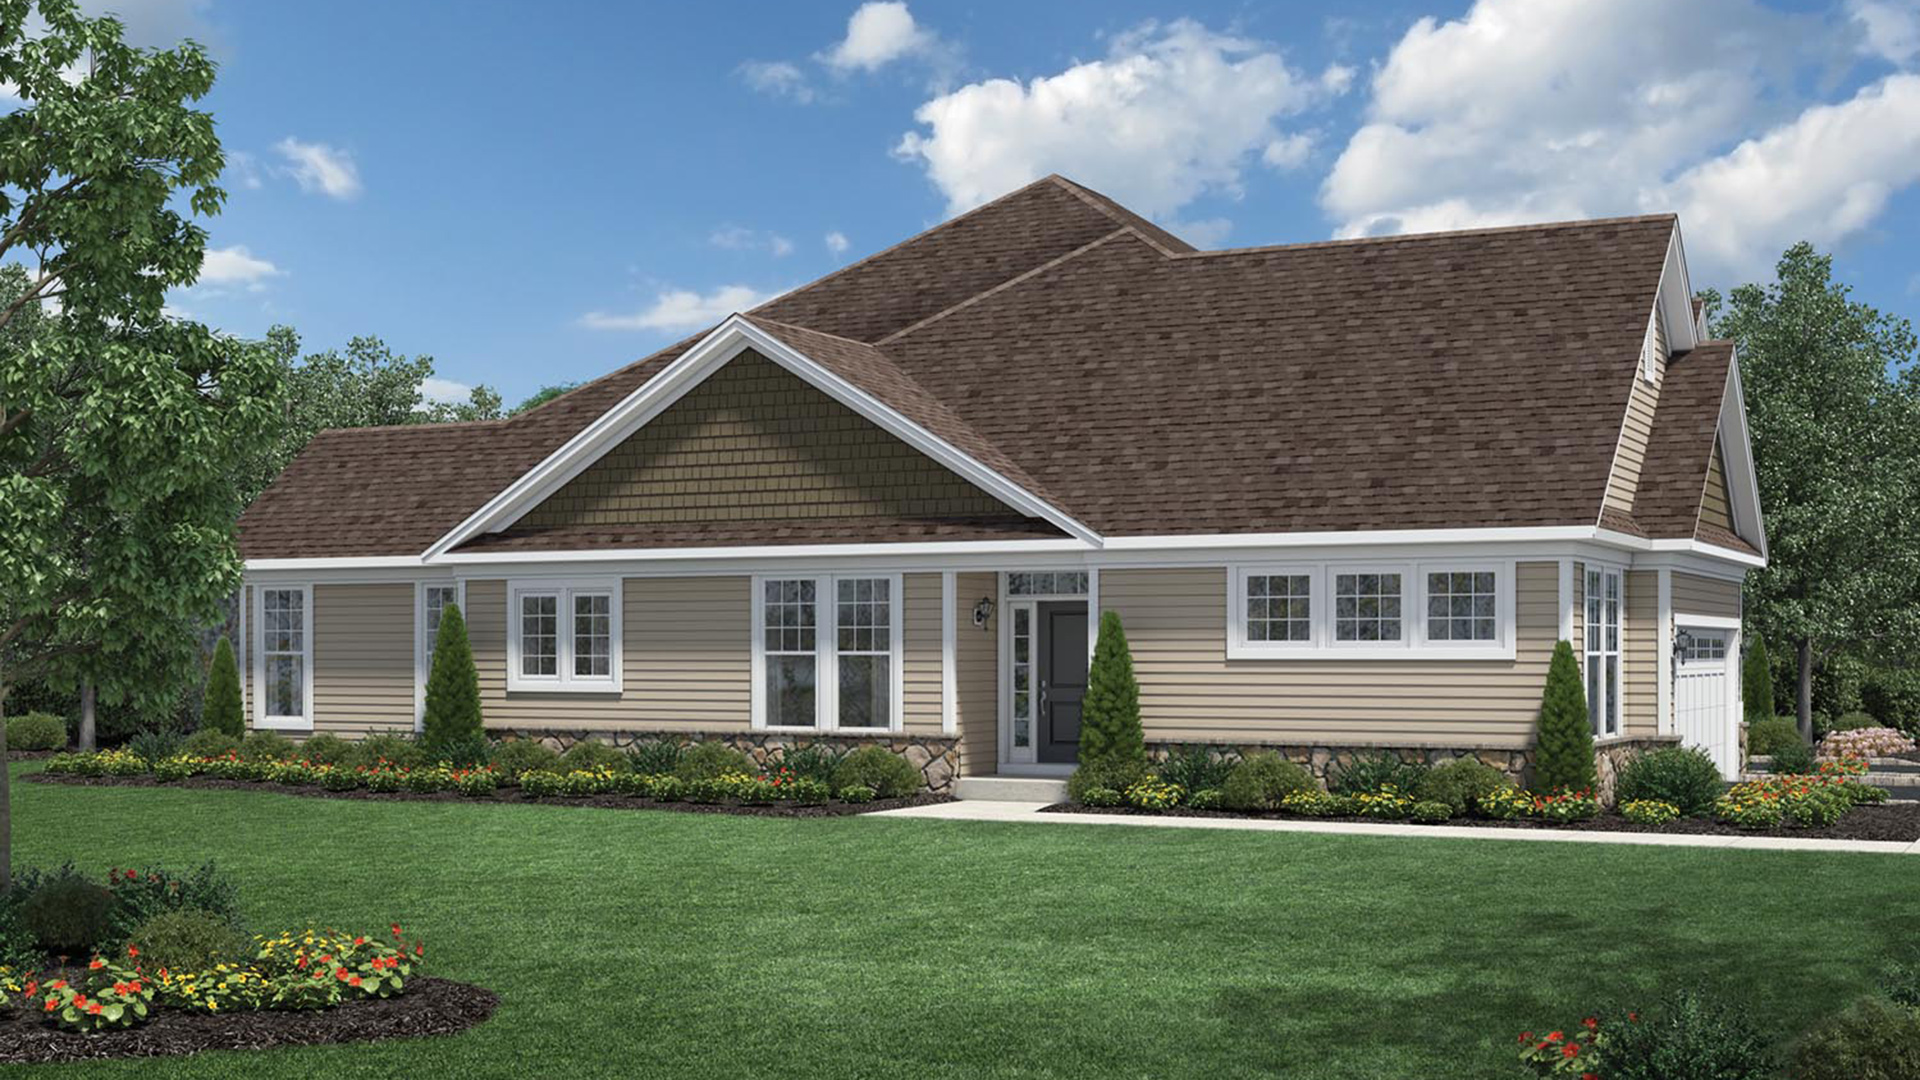 Right Here is the Brand New Image Of Patio Homes for Sale In Crestview Wichita Ks